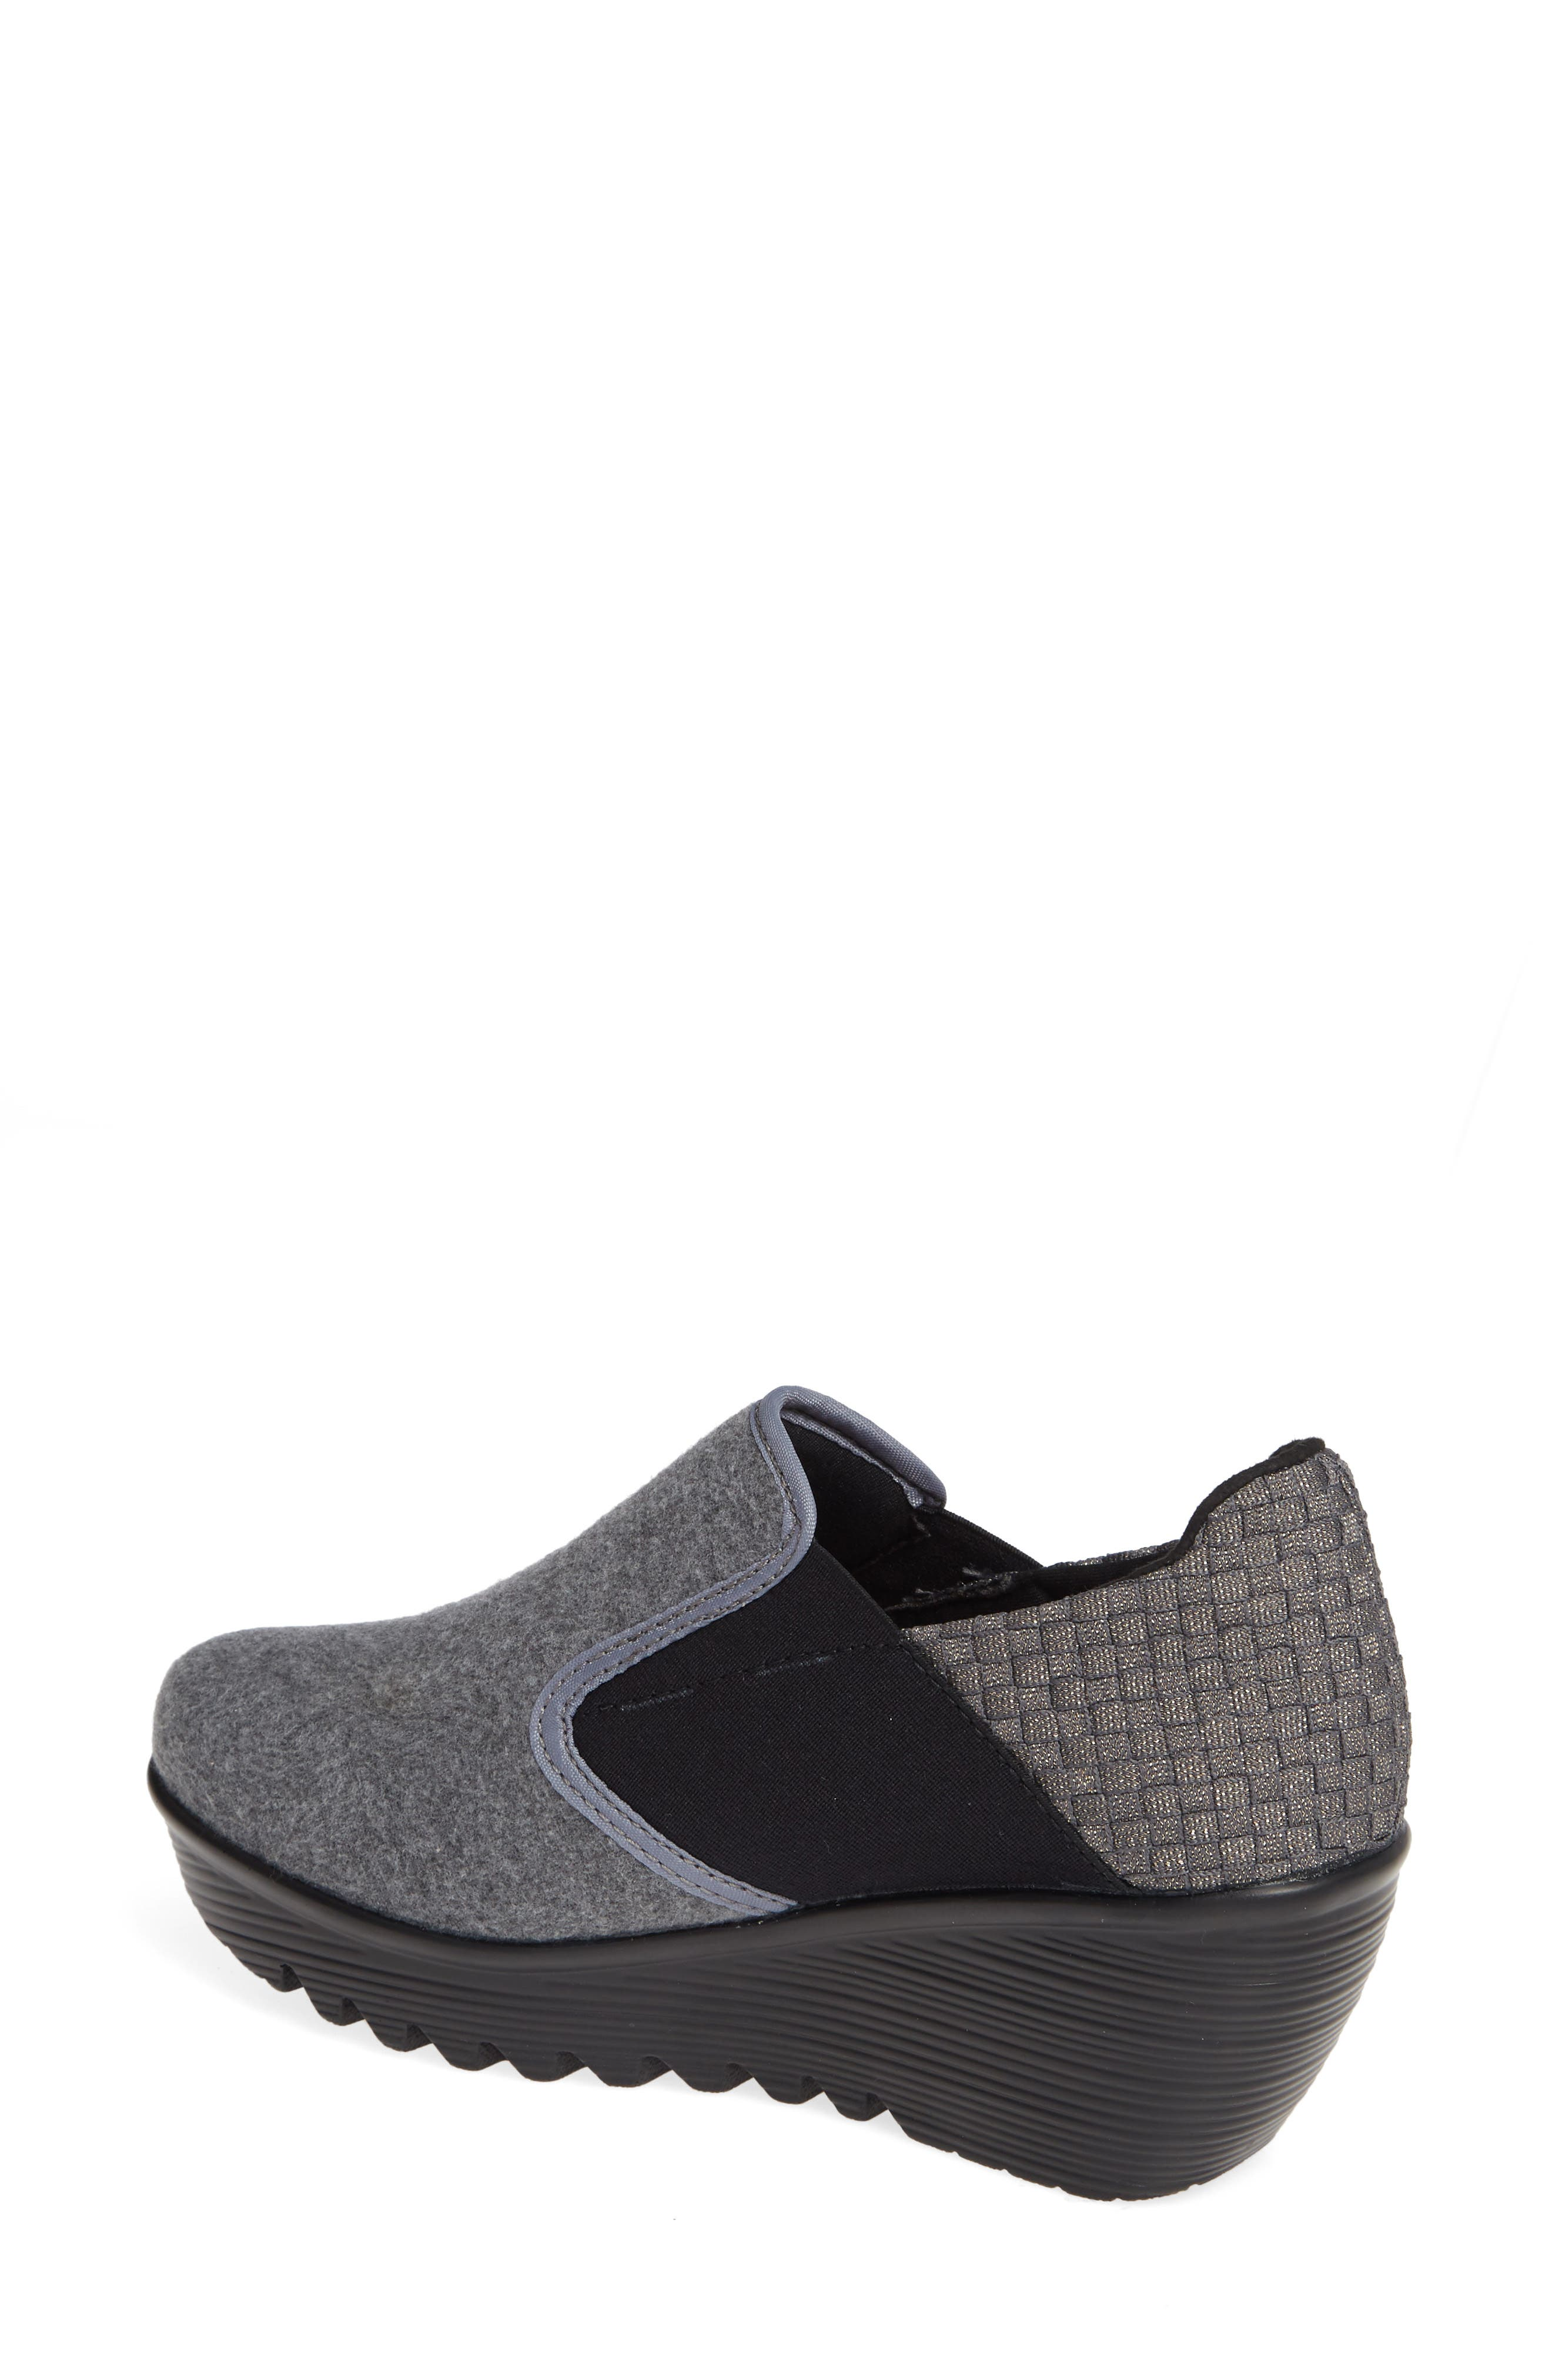 Bari Wedge,                             Alternate thumbnail 2, color,                             GREY SHIMMER LEATHER